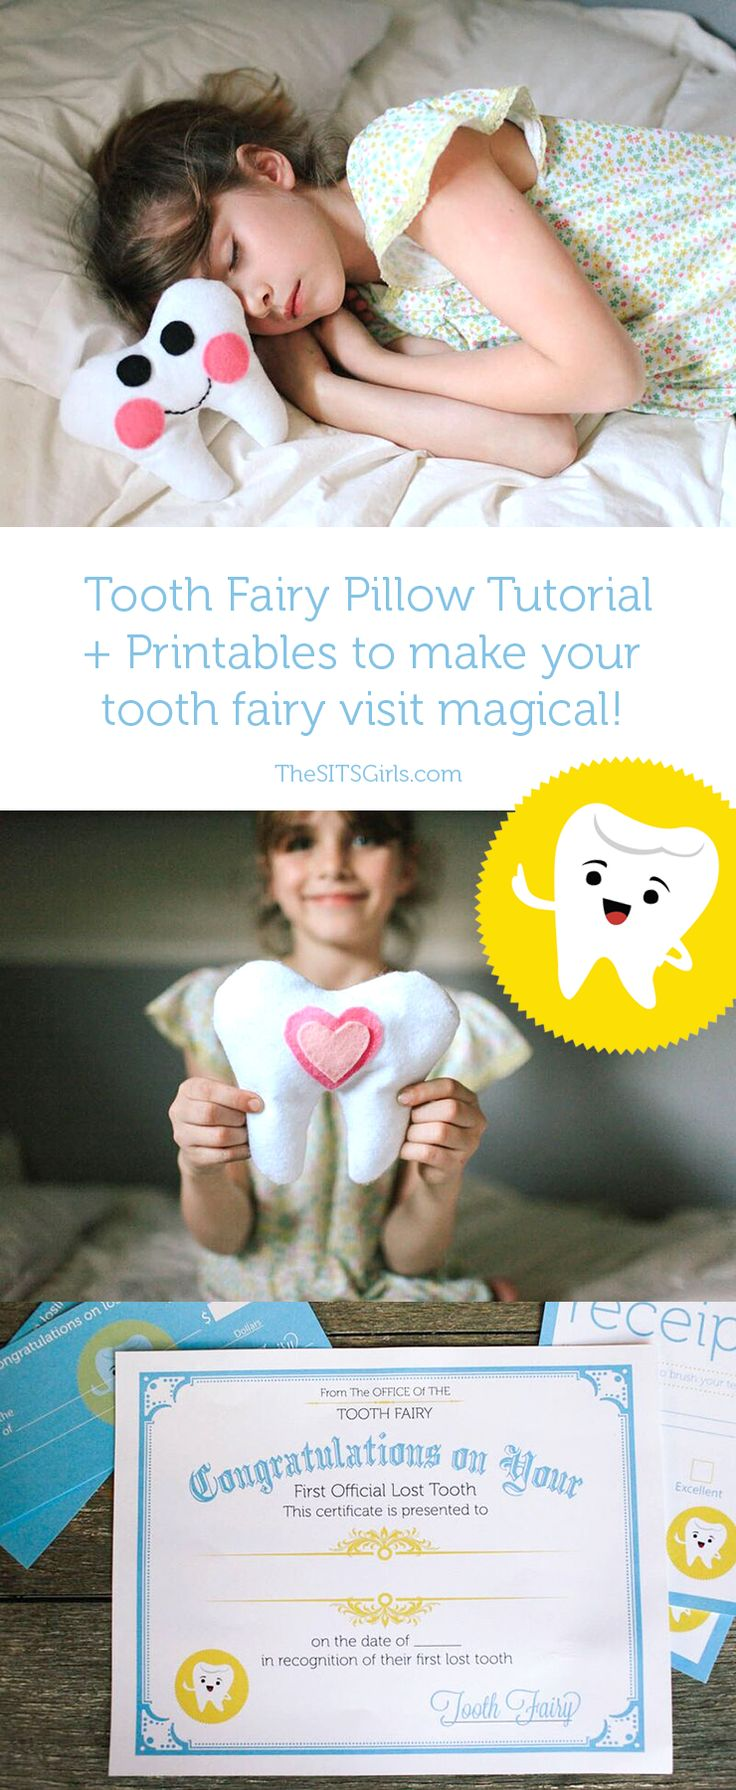 Make the Tooth Fairy visit special with an easy to make, DIY Tooth Fairy pillow and super cute Tooth Fairy printables - including a letter from the fairy, tooth receipt, and even an official Tooth Fairy Check for those nights when parents aren't prepared for a lost tooth.